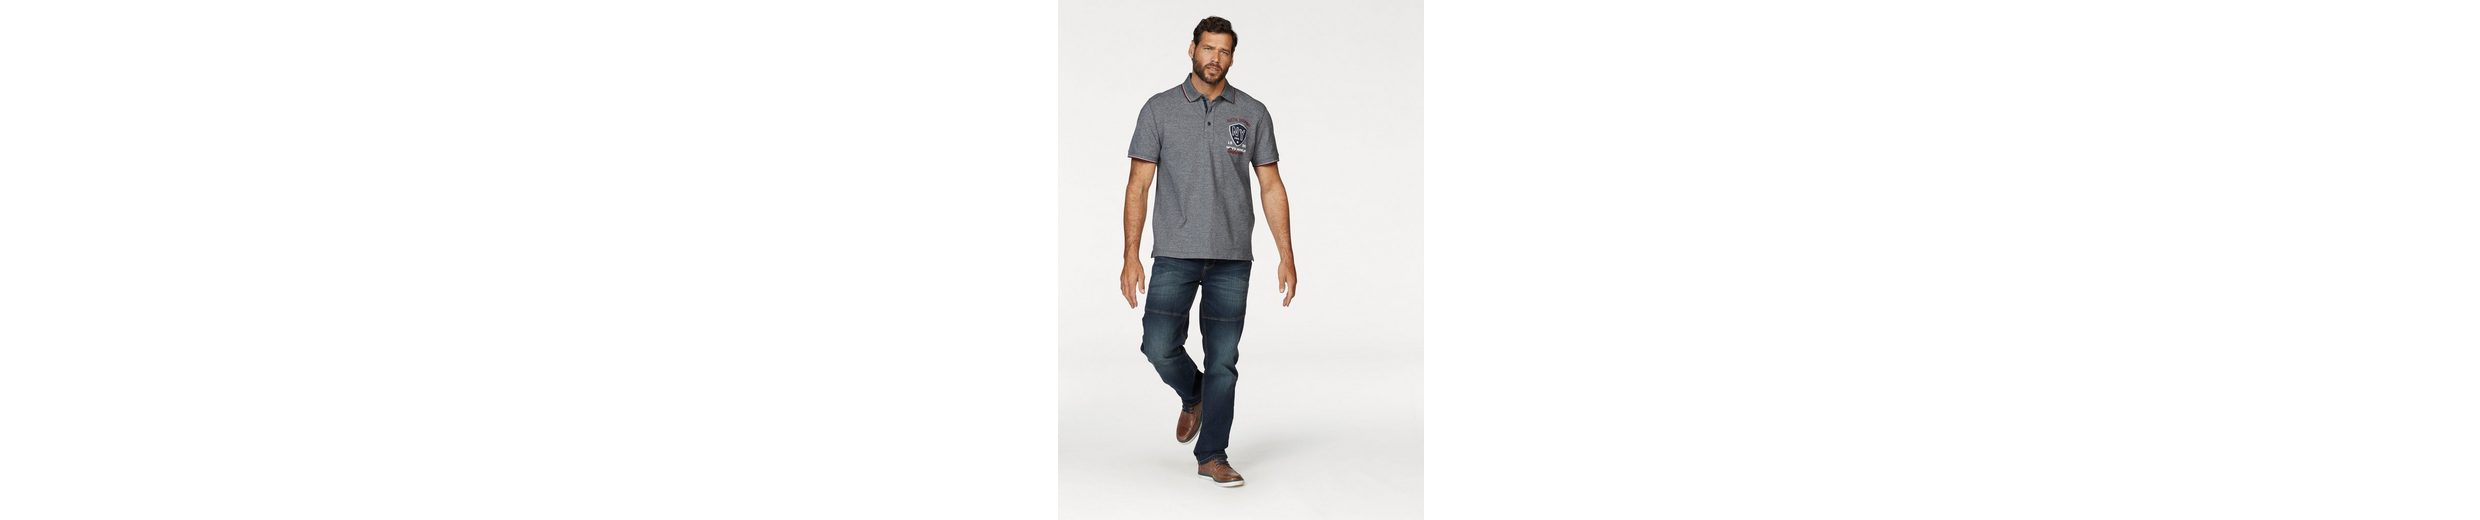 Man's World Poloshirt Rabatt Footlocker Finish XlX9U